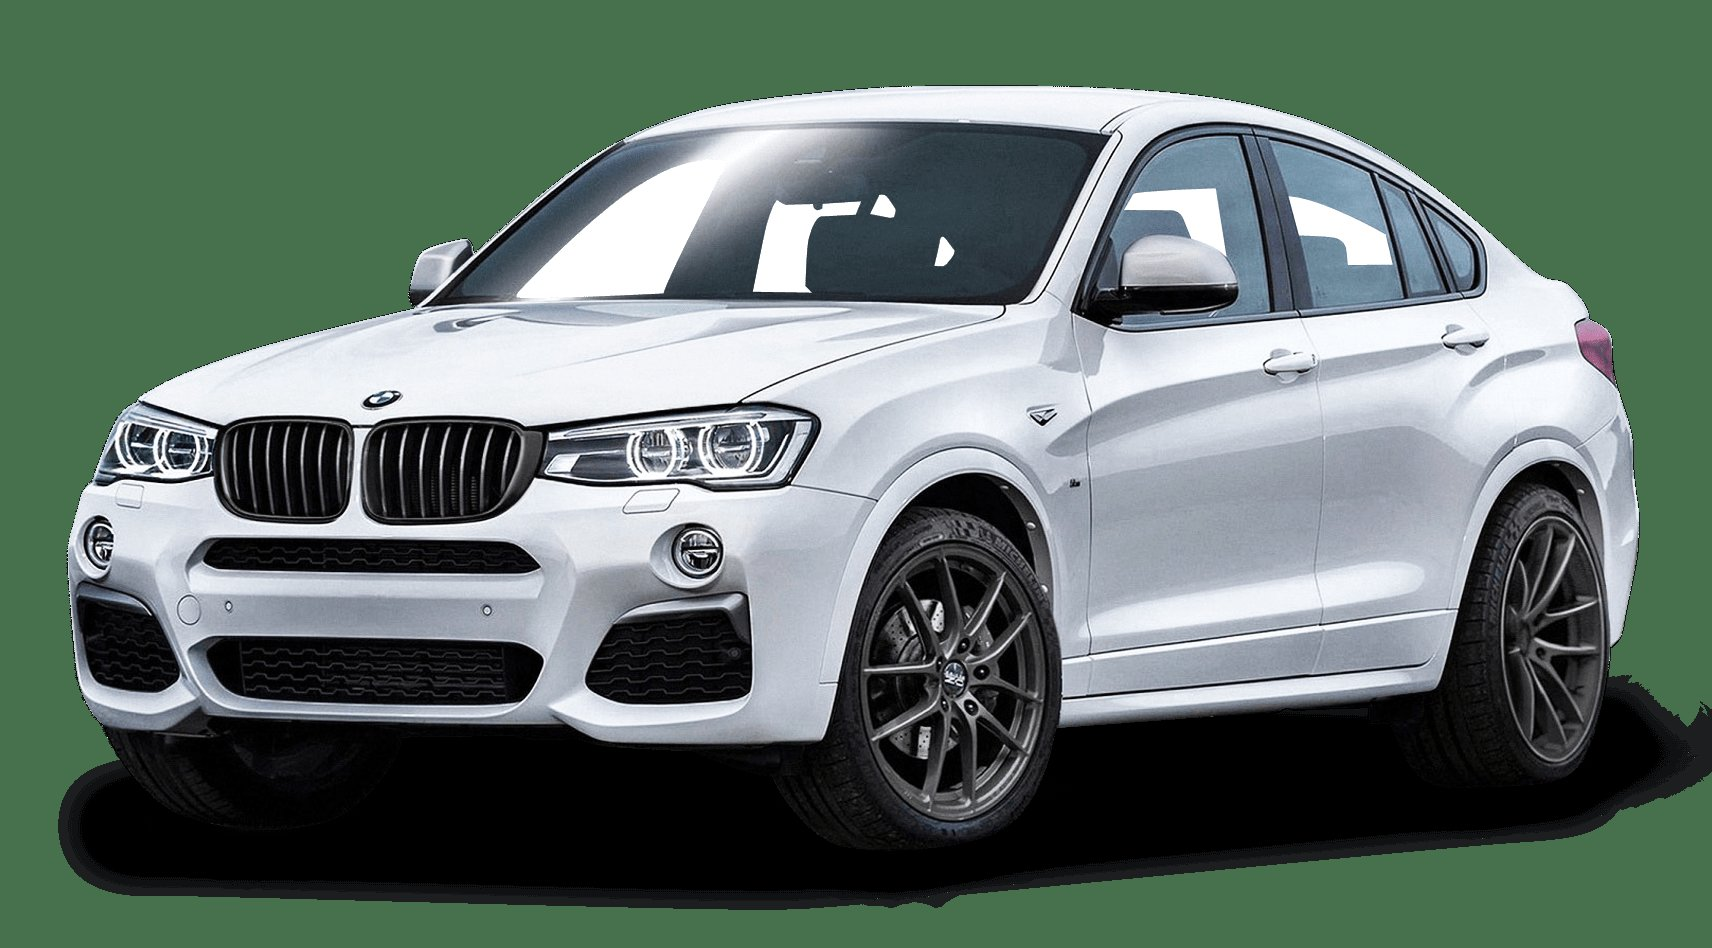 Latest White Bmw X3 Car Png Image Pngpix Free Download